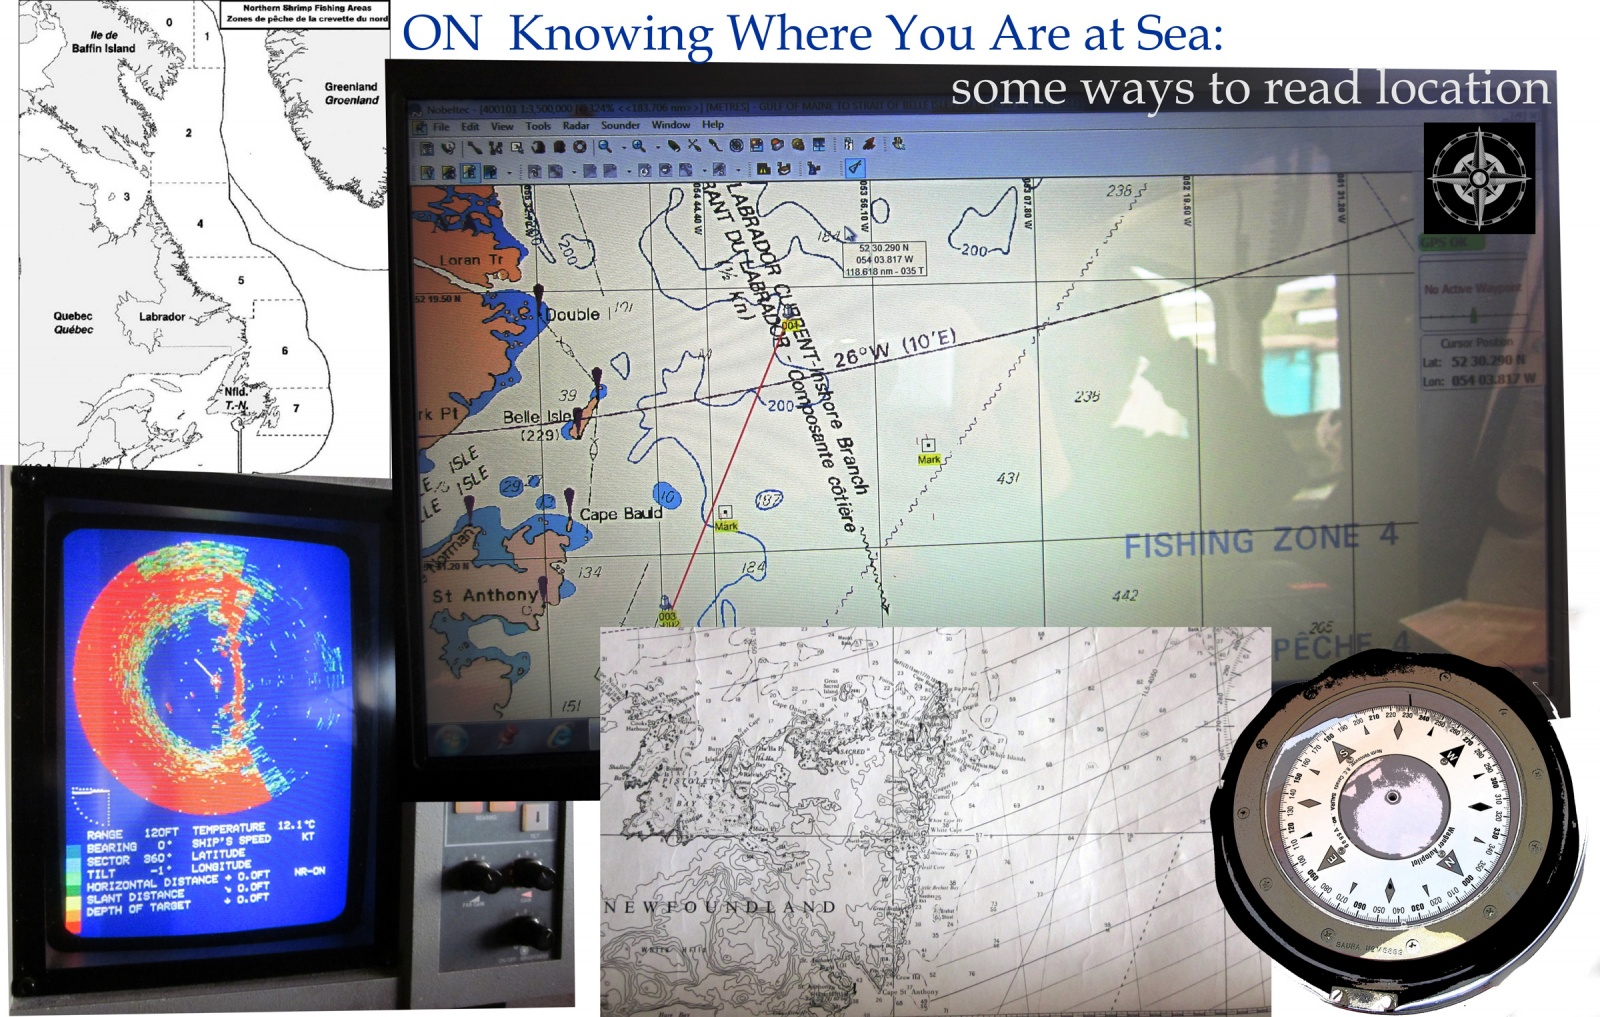 On Knowing Where You Are At Sea